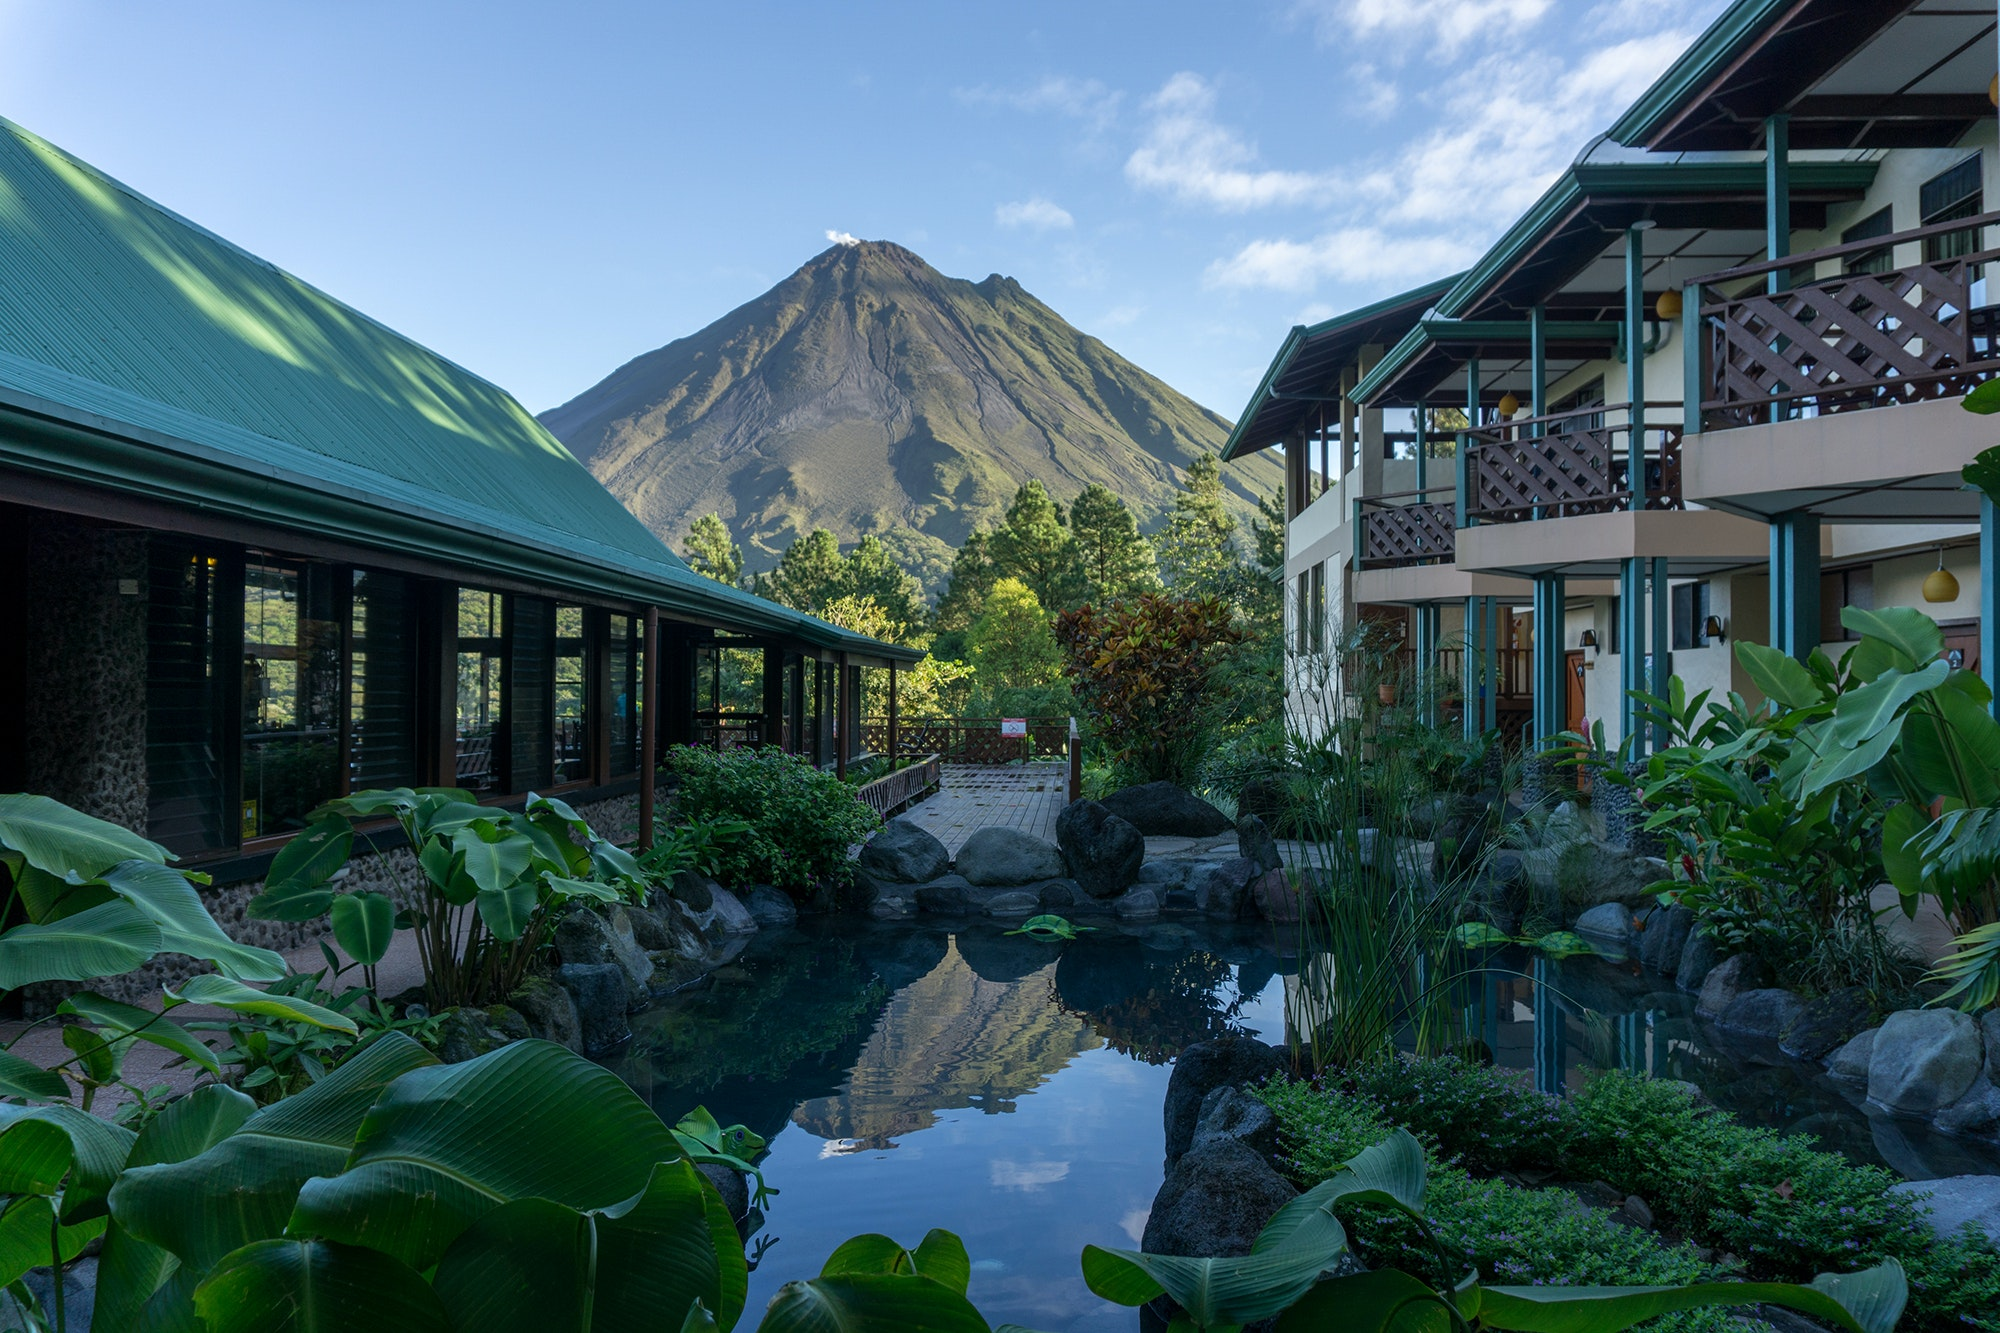 Costa Rica's network of private reserves, which includes Arenal Observatory Lodge & Spa, helps connect and expand the country's natural spaces.